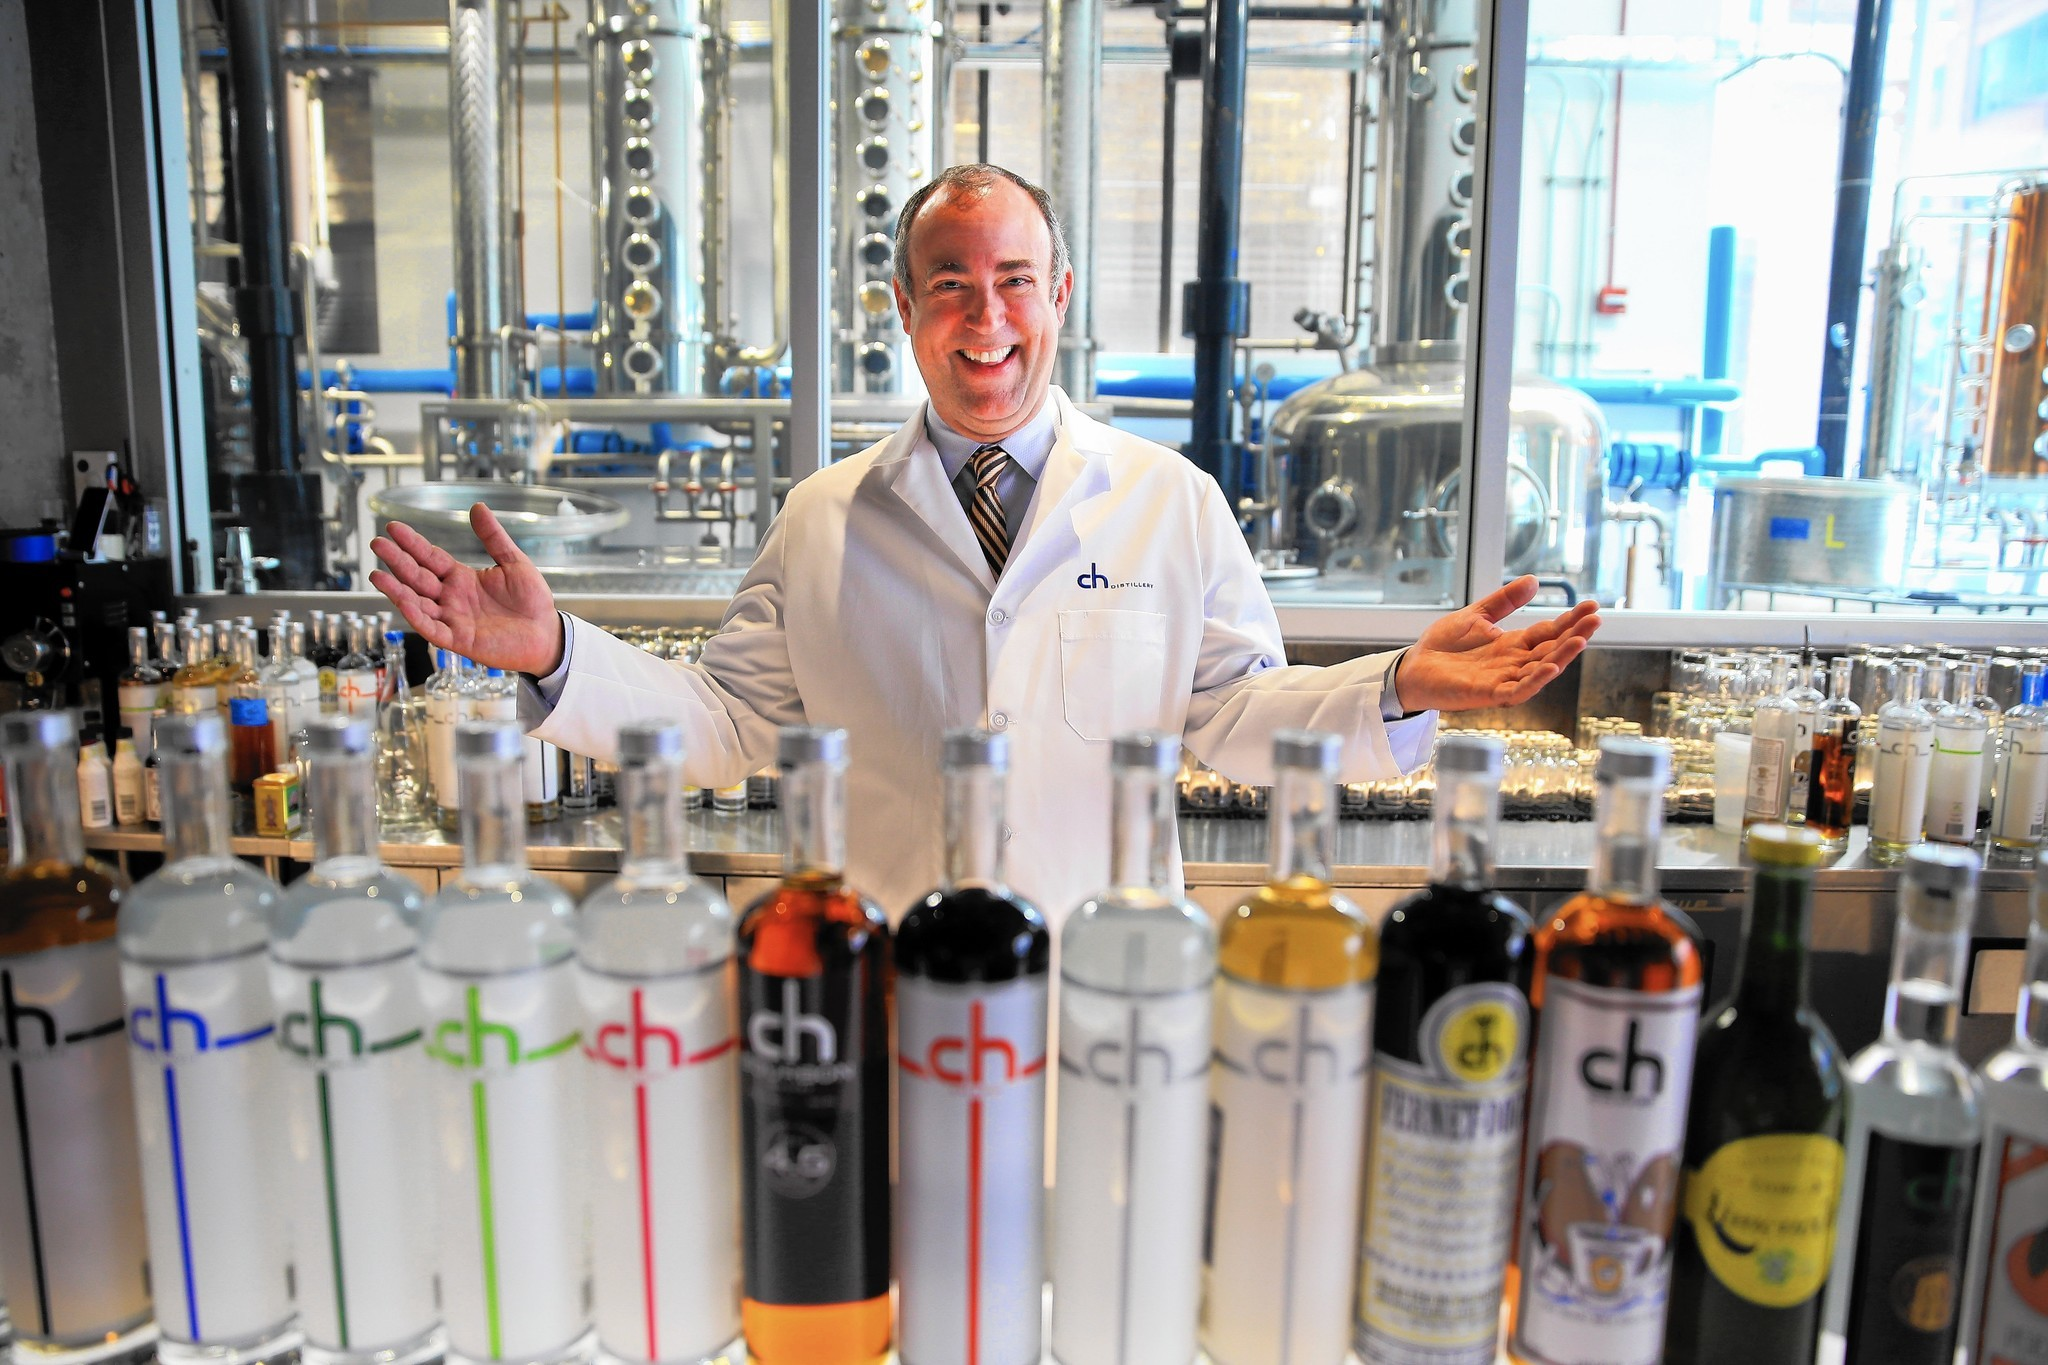 Chicago's craft distillery revolution: From none to 17 in 14 years